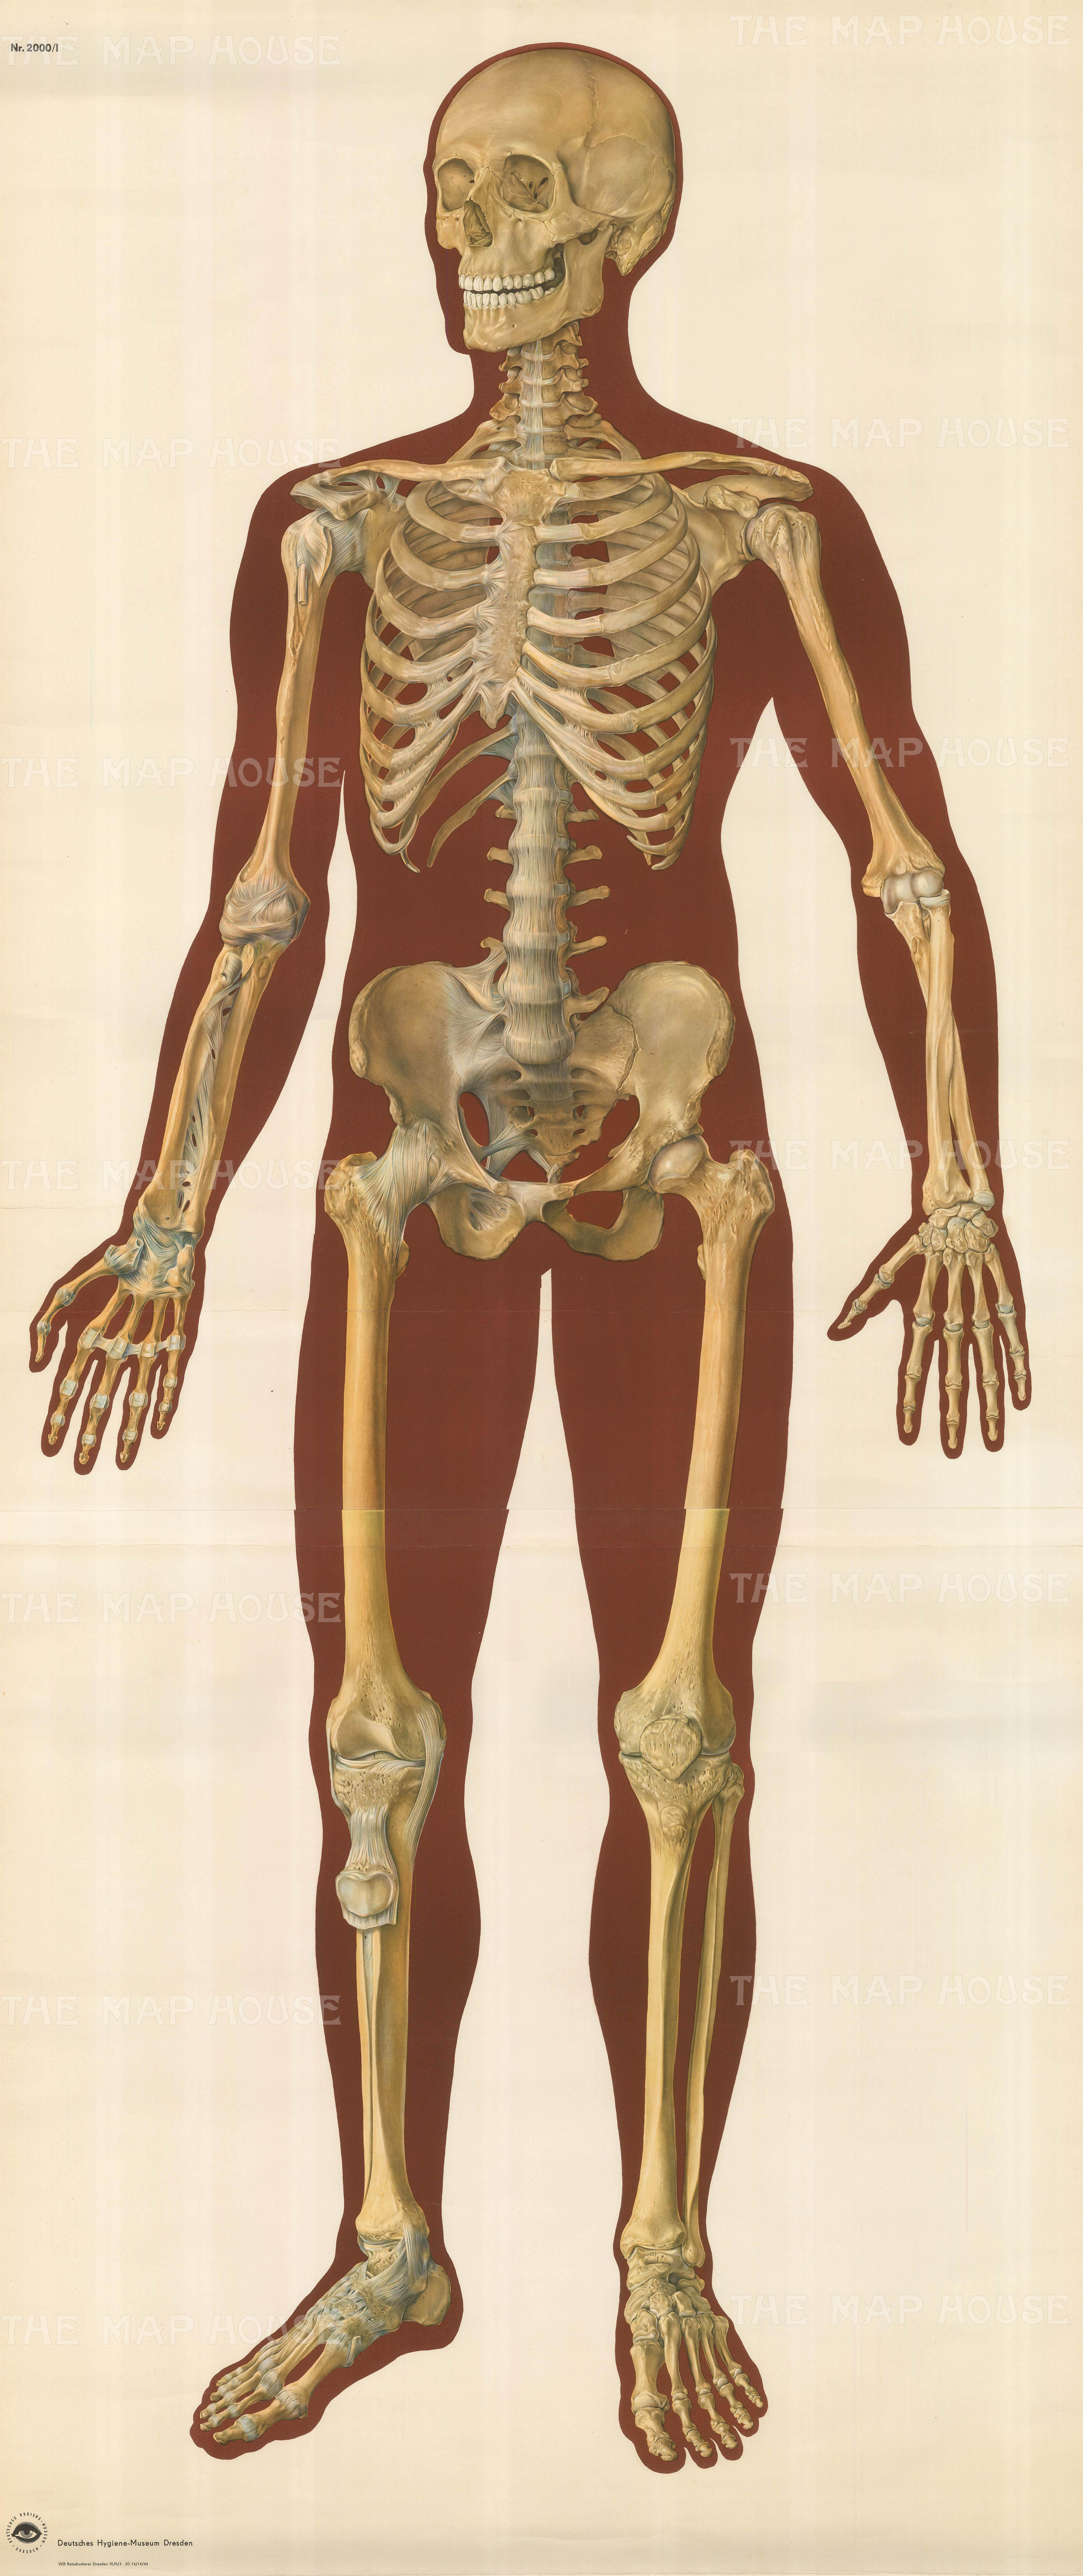 It is a picture of Life Size Printable Skeleton intended for aesthetic